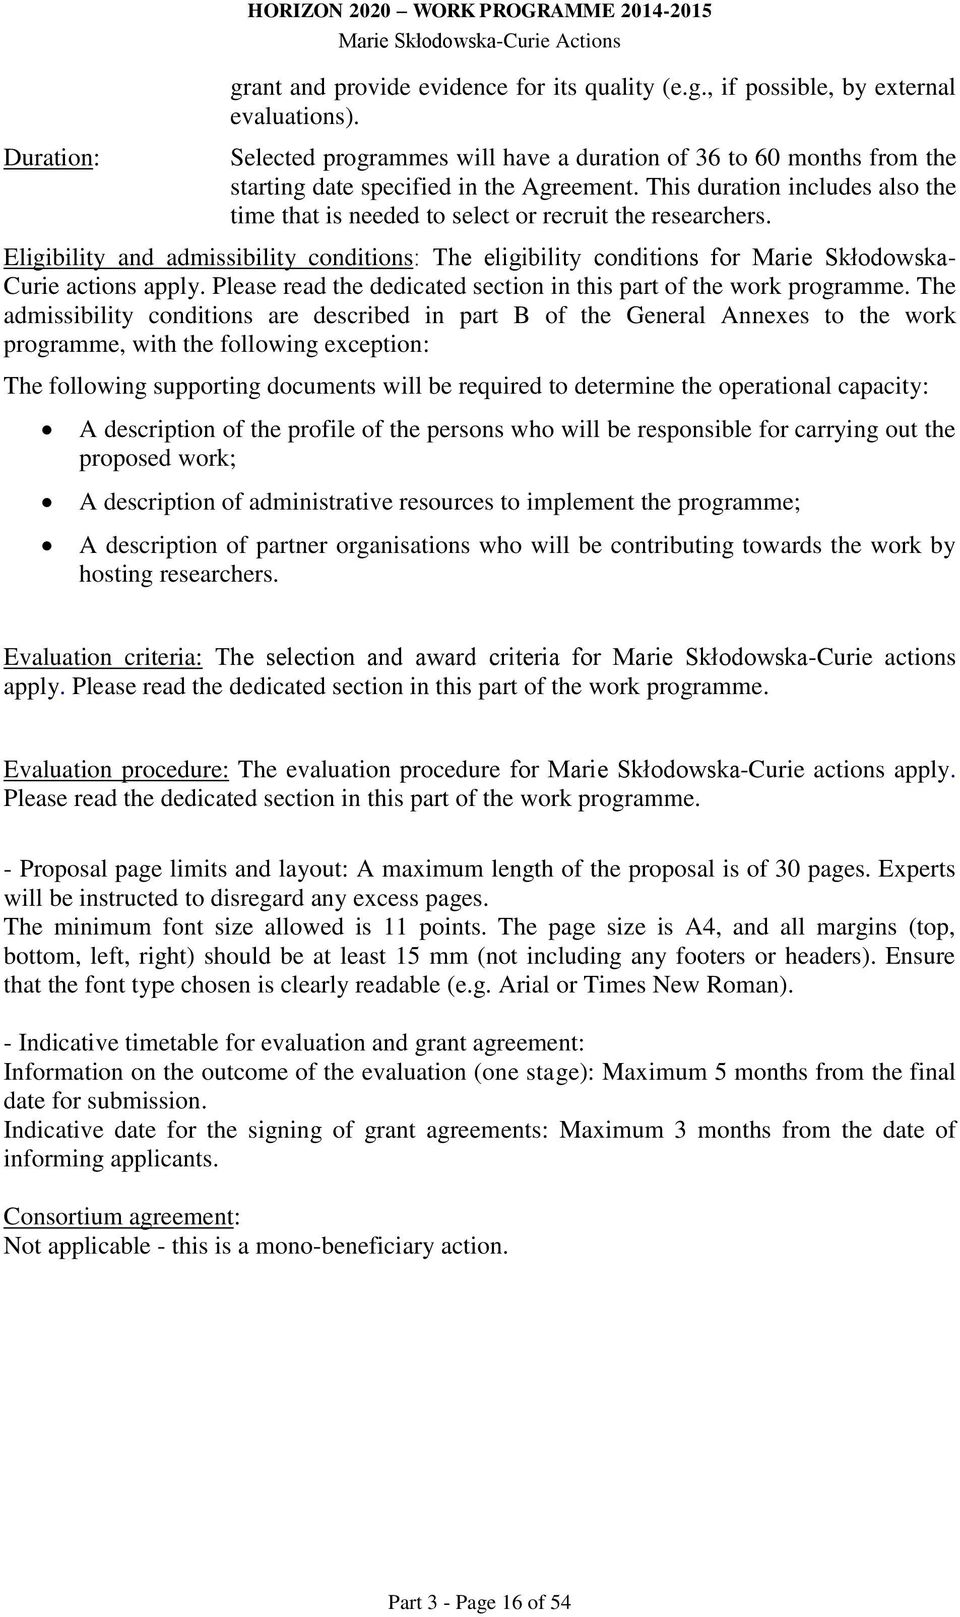 Eligibility and admissibility conditions: The eligibility conditions for Marie Skłodowska- Curie actions apply. Please read the dedicated section in this part of the work programme.